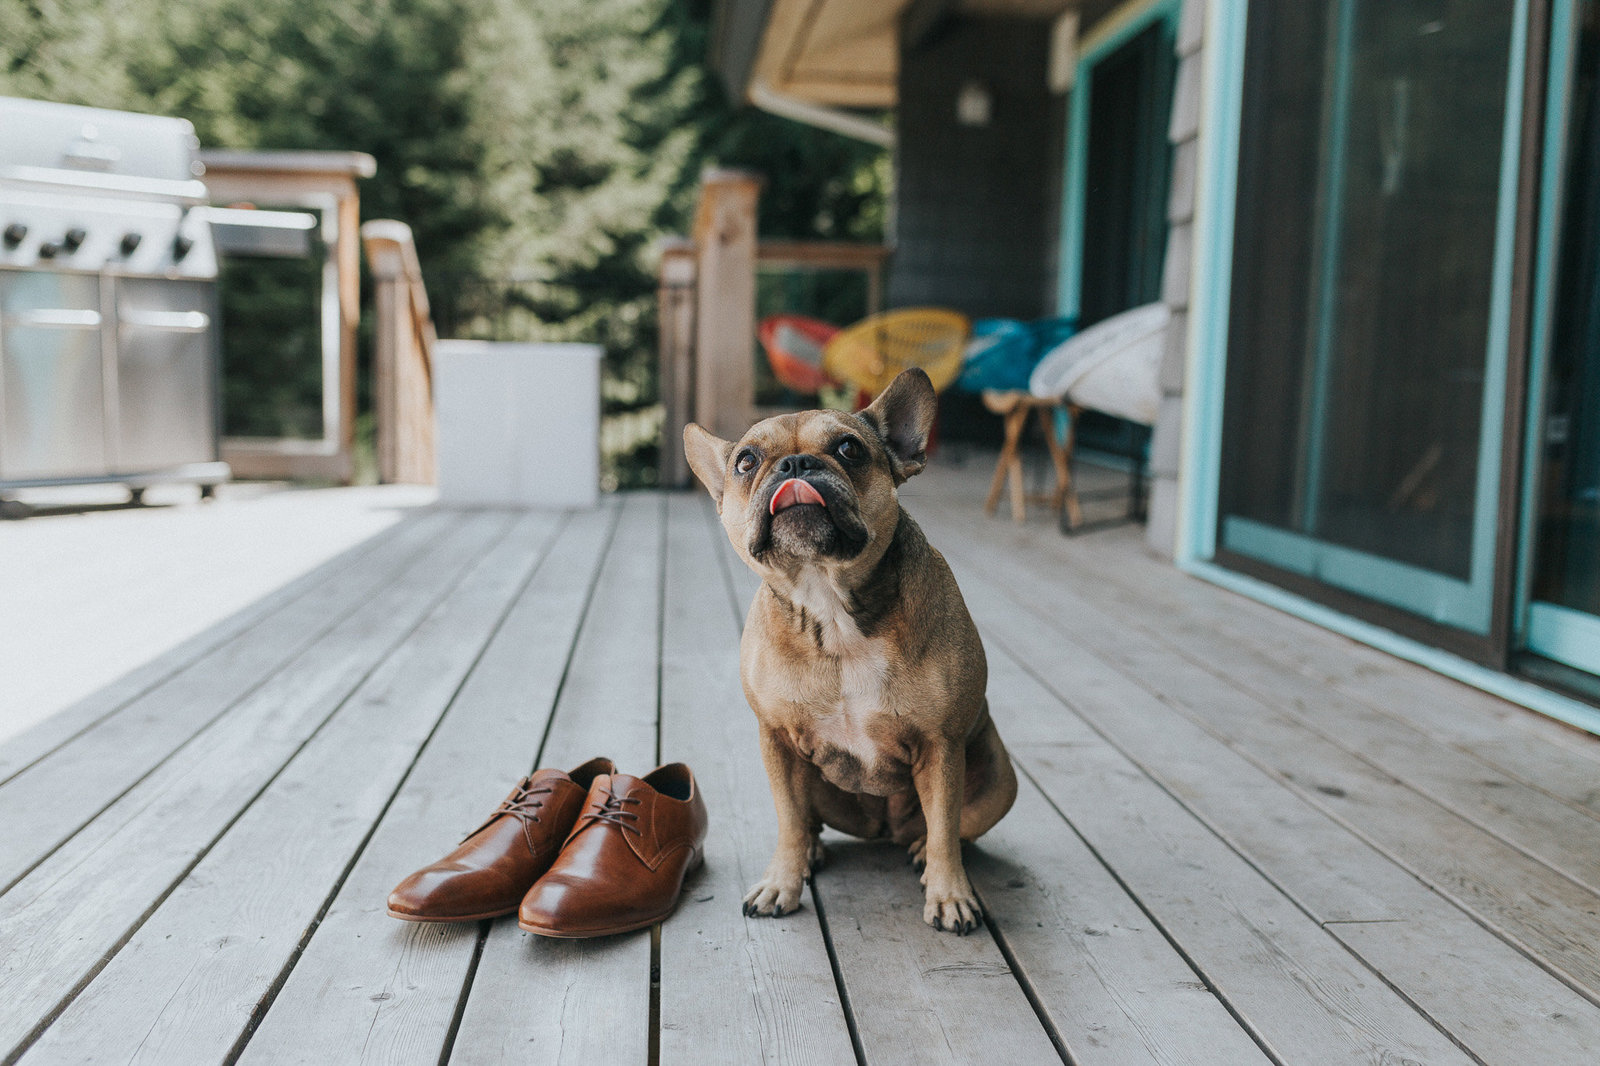 Dog and groom's shoes